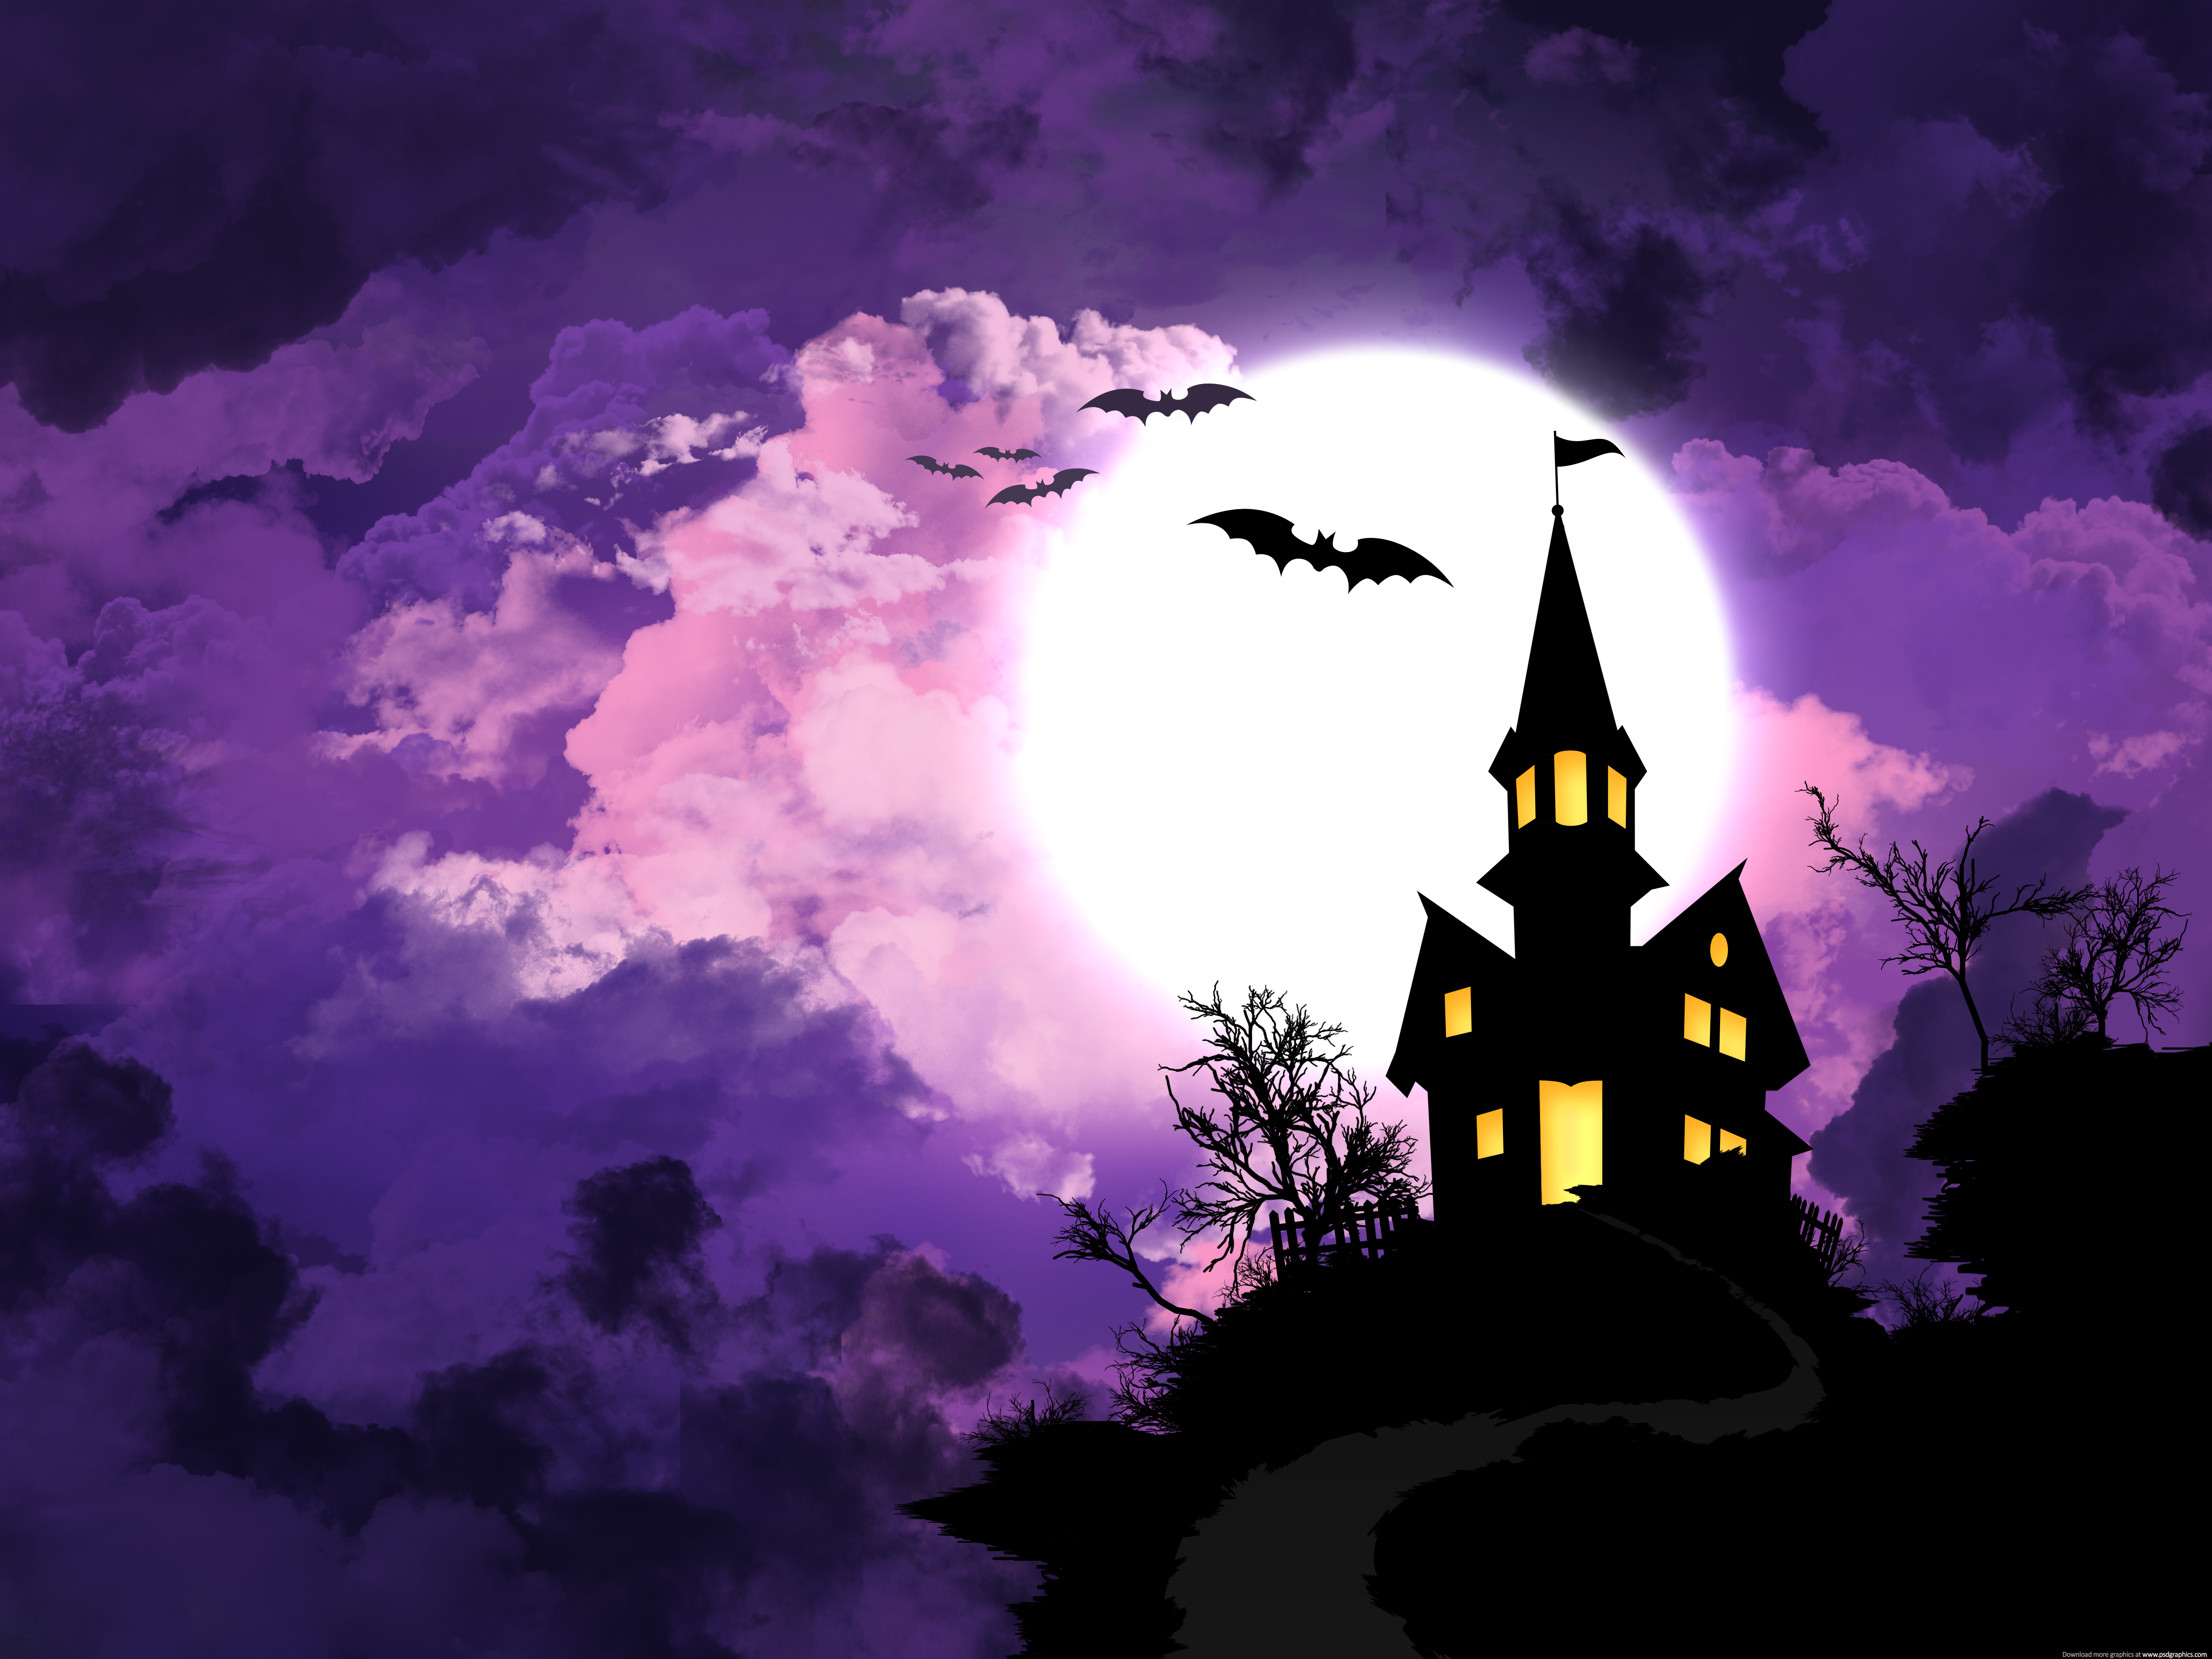 Halloween Background Wallpaper Images 10 Cool Hd 5000x3750